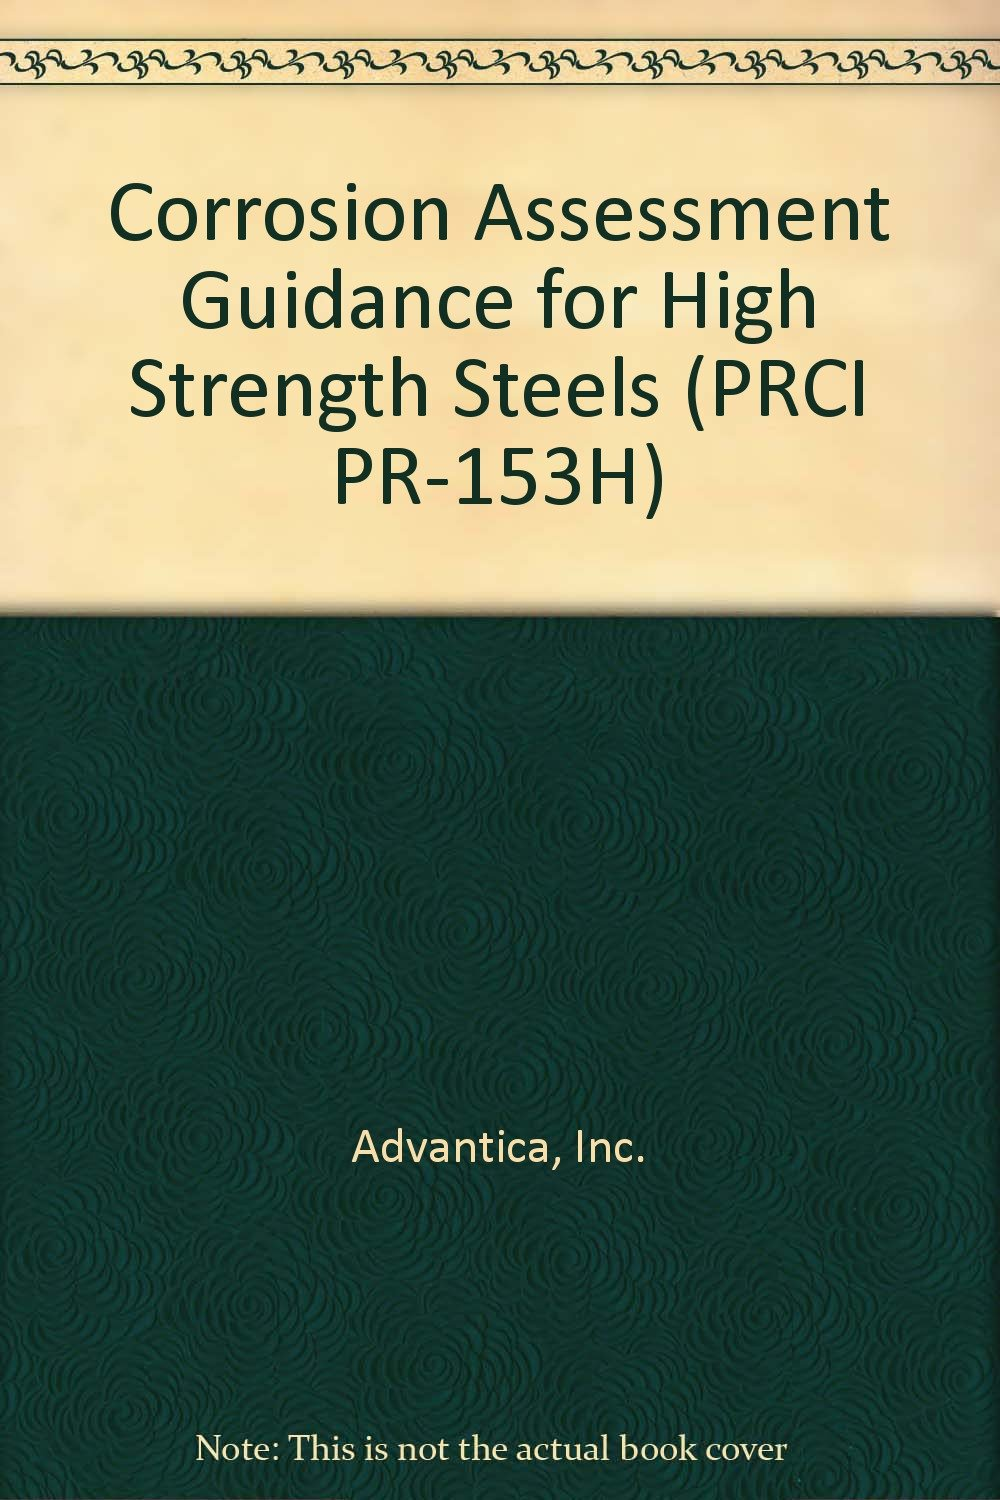 Download Corrosion Assessment Guidance for High Strength Steels (PRCI PR-153H) PDF